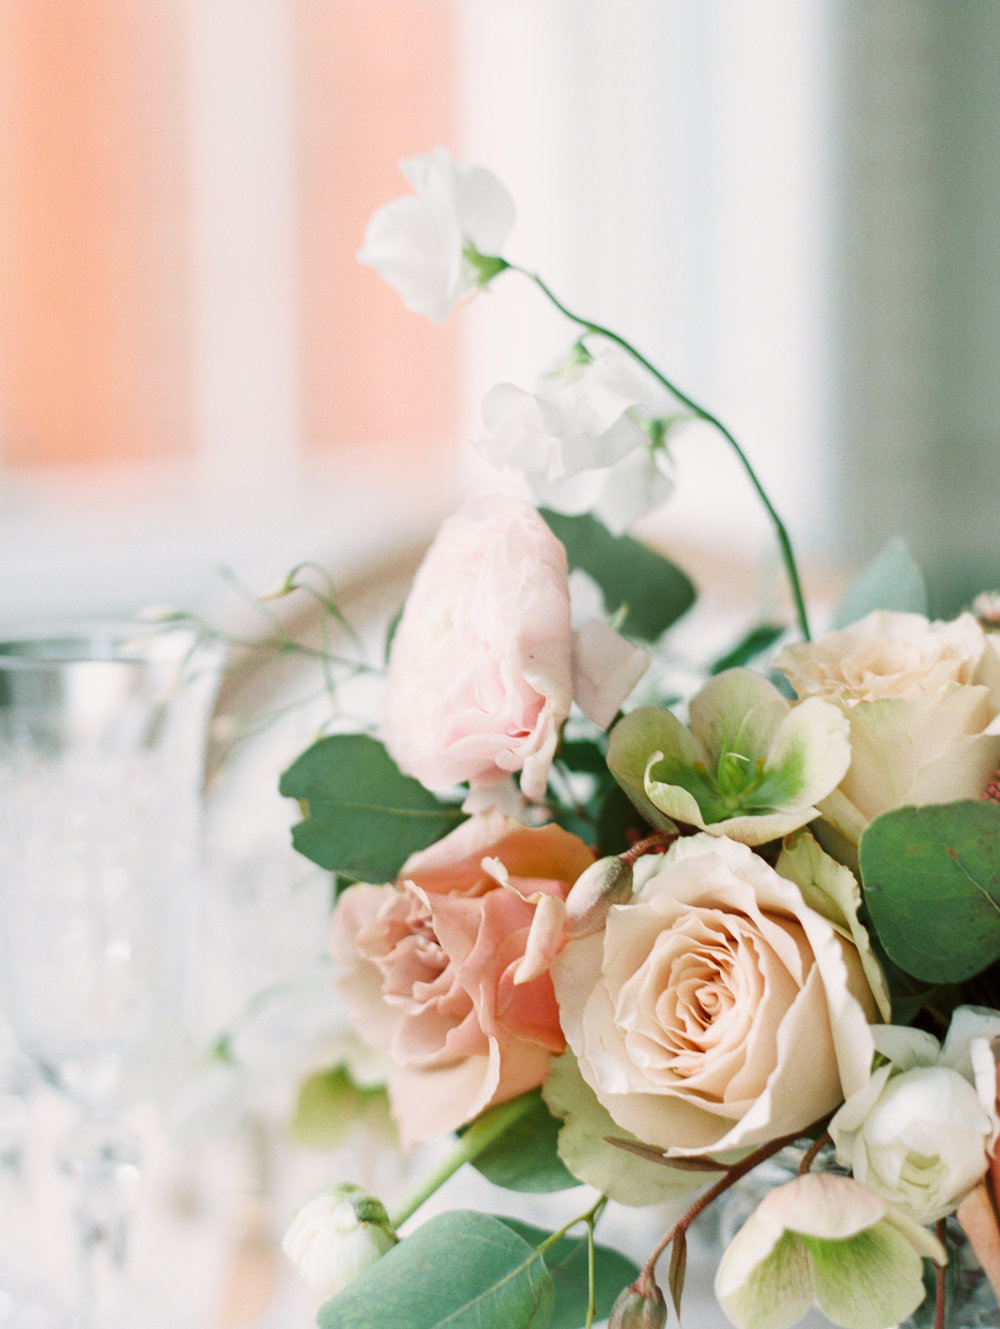 The Timeless Stylist-Elegant and Romantic Wedding Design and Styling-Peach Wedding Flowers